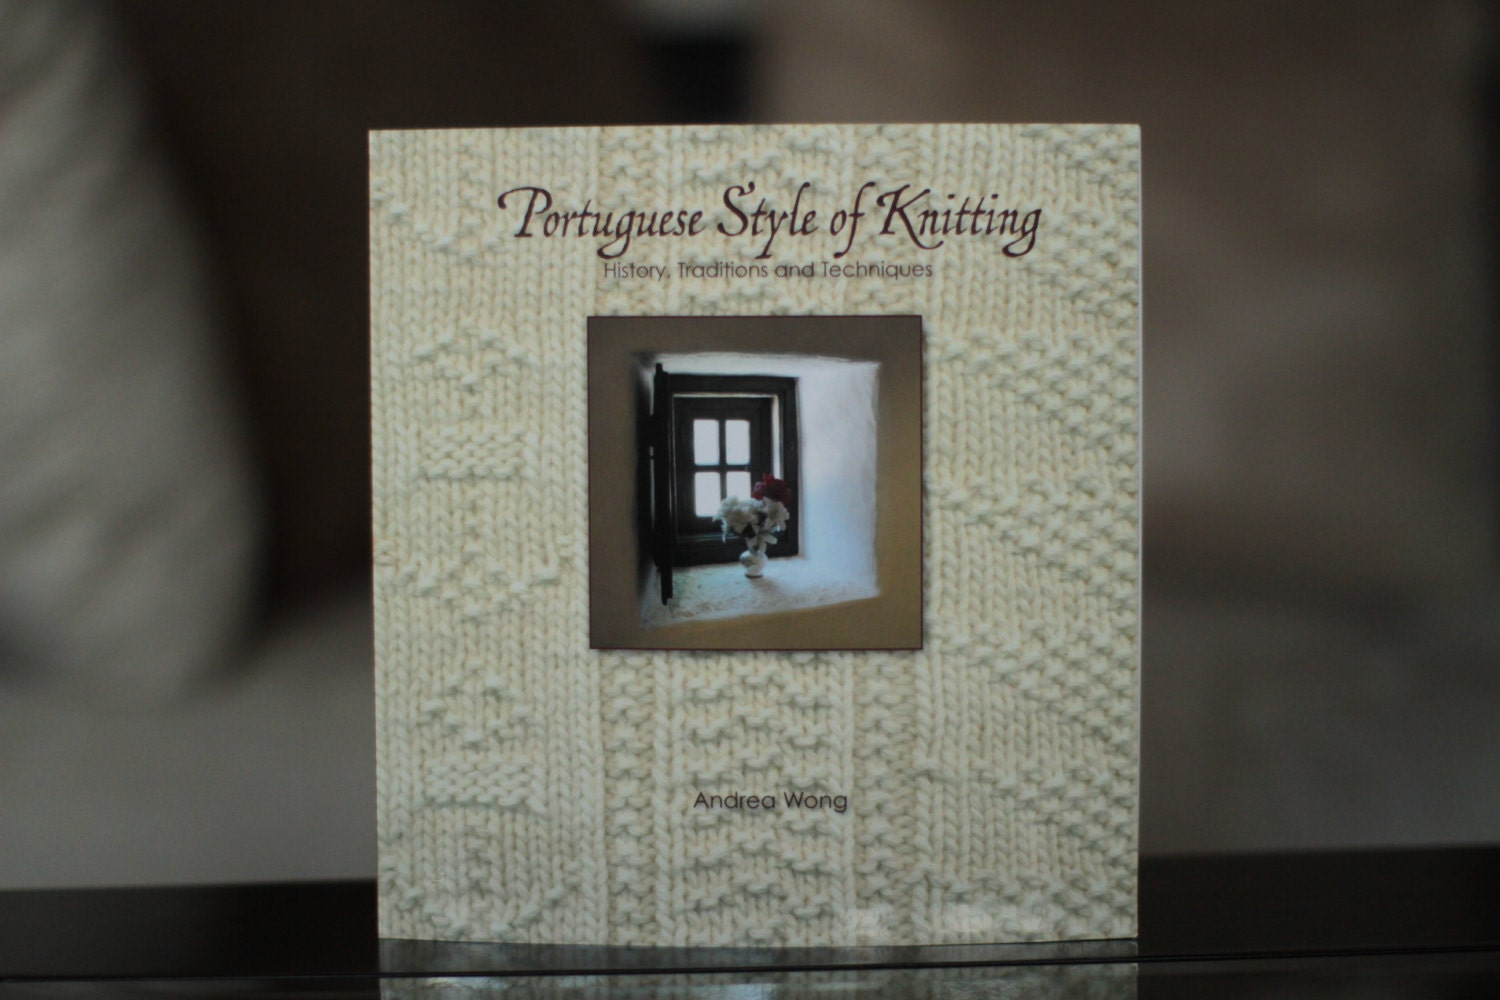 Knitting History And Culture : Book portuguese style of knitting history traditions and